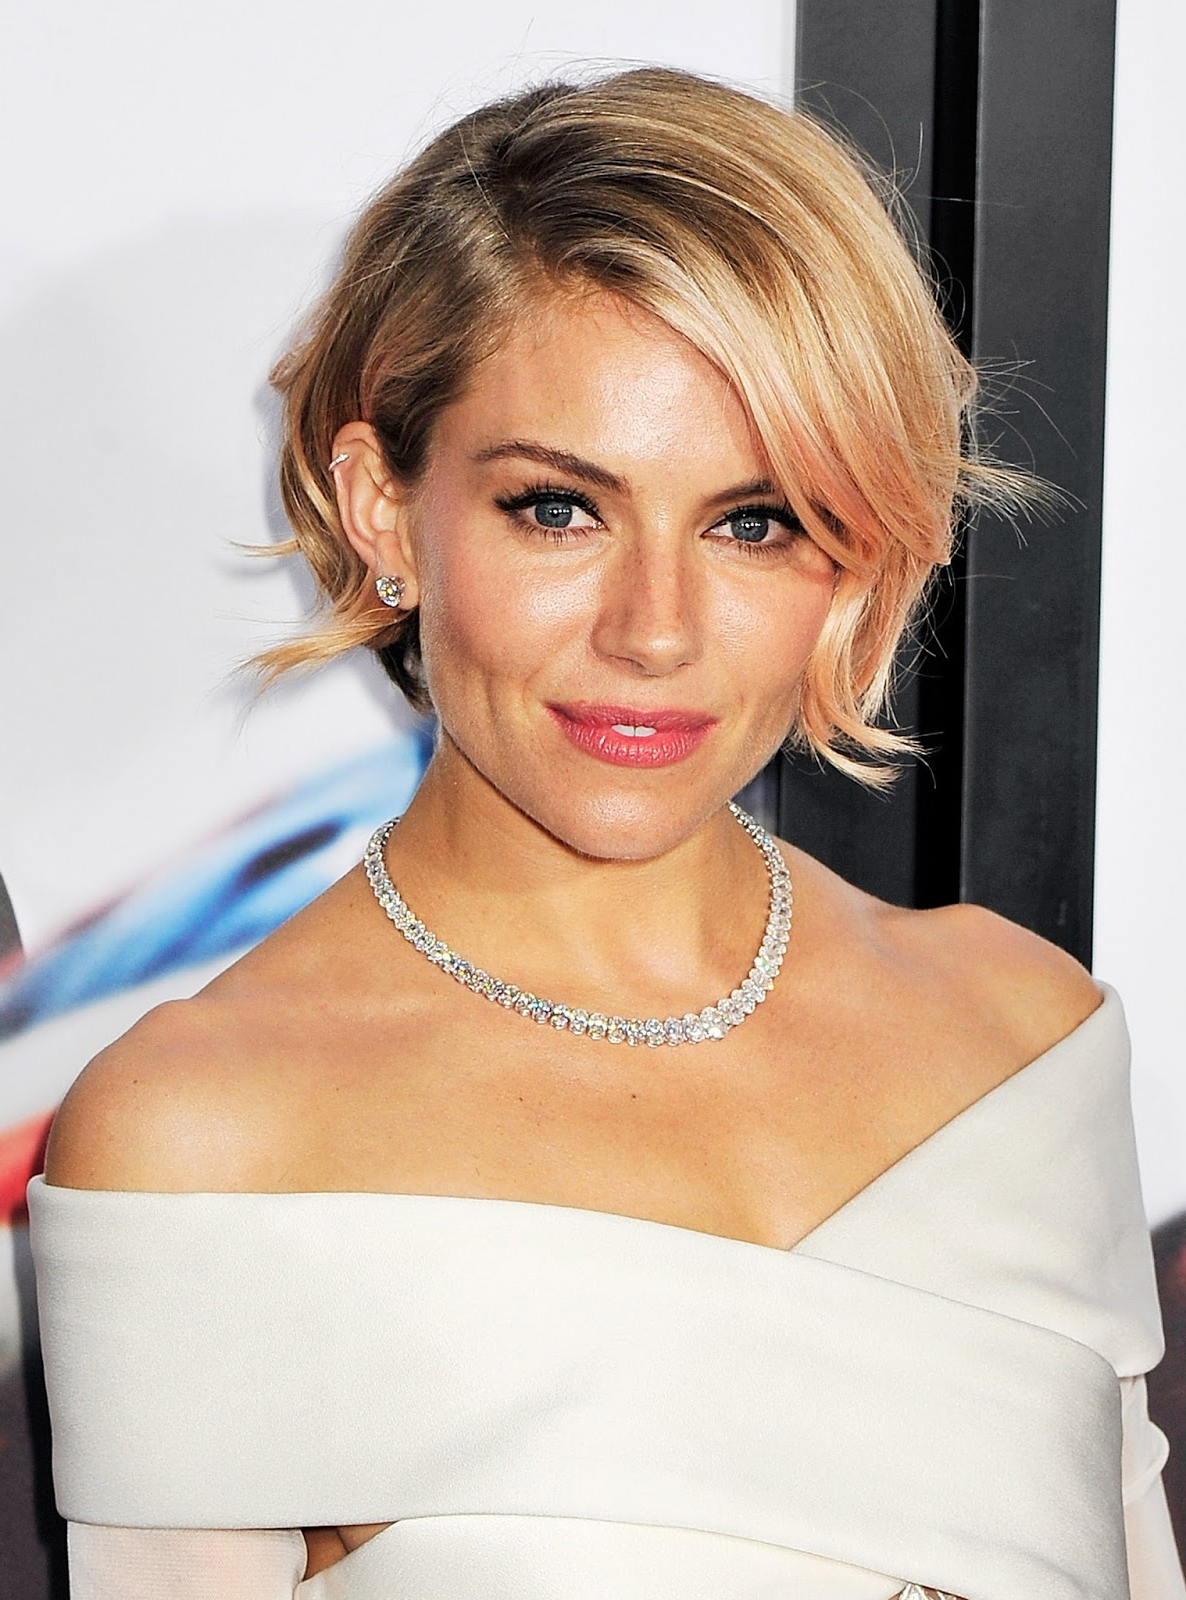 Hairstyles: Short Hair Styles For Women Within Short Haircuts For Petite Women (View 13 of 25)